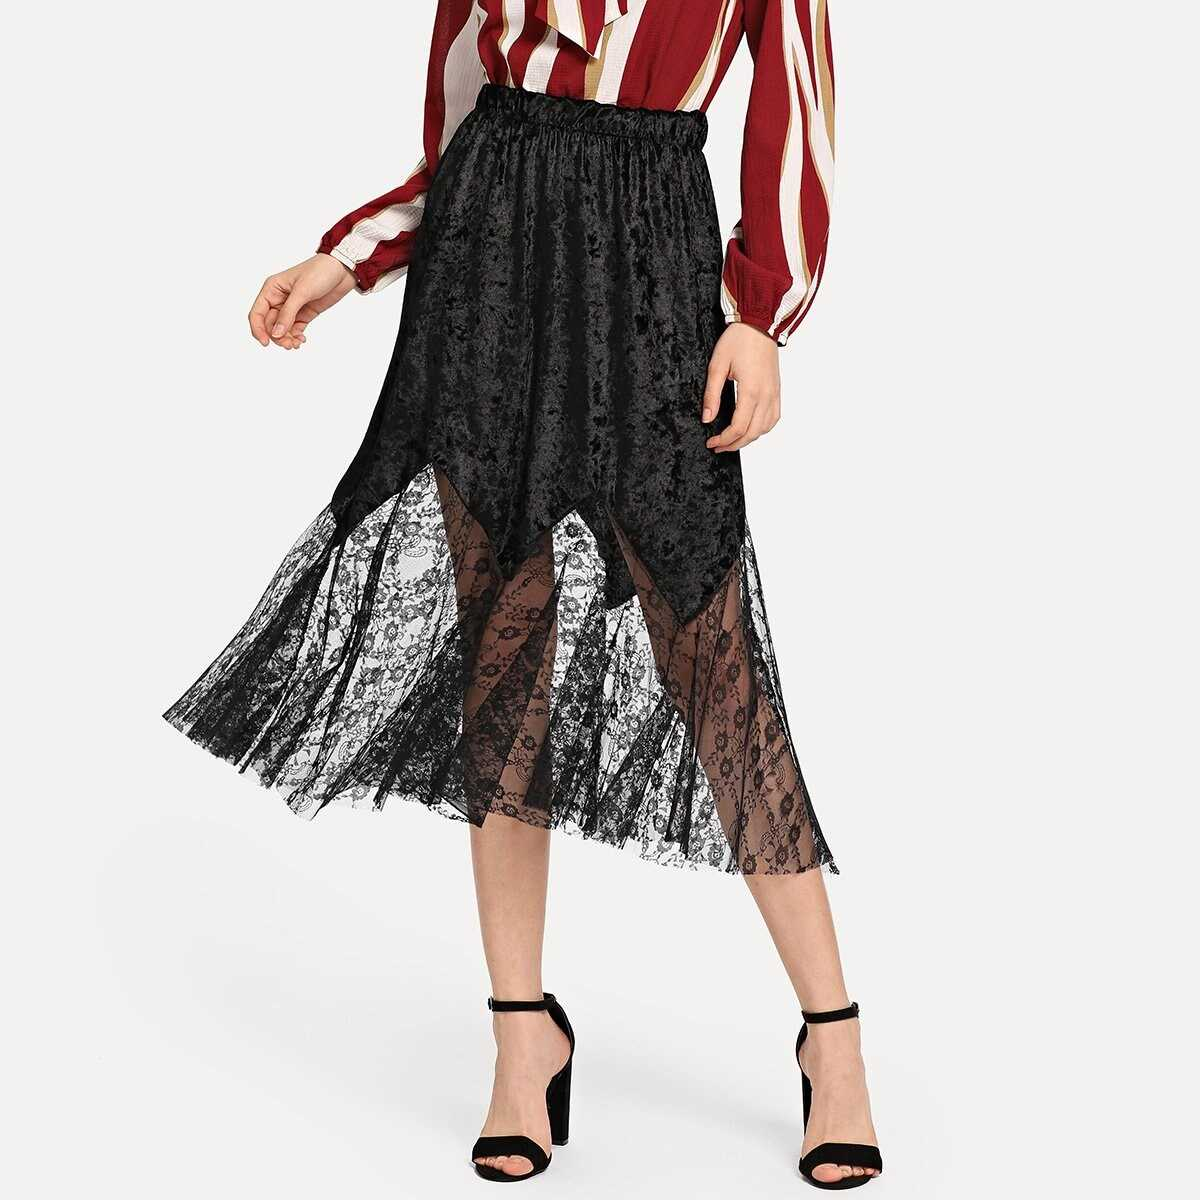 Contrast Lace Solid Velvet Skirts - Shein - GOOFASH